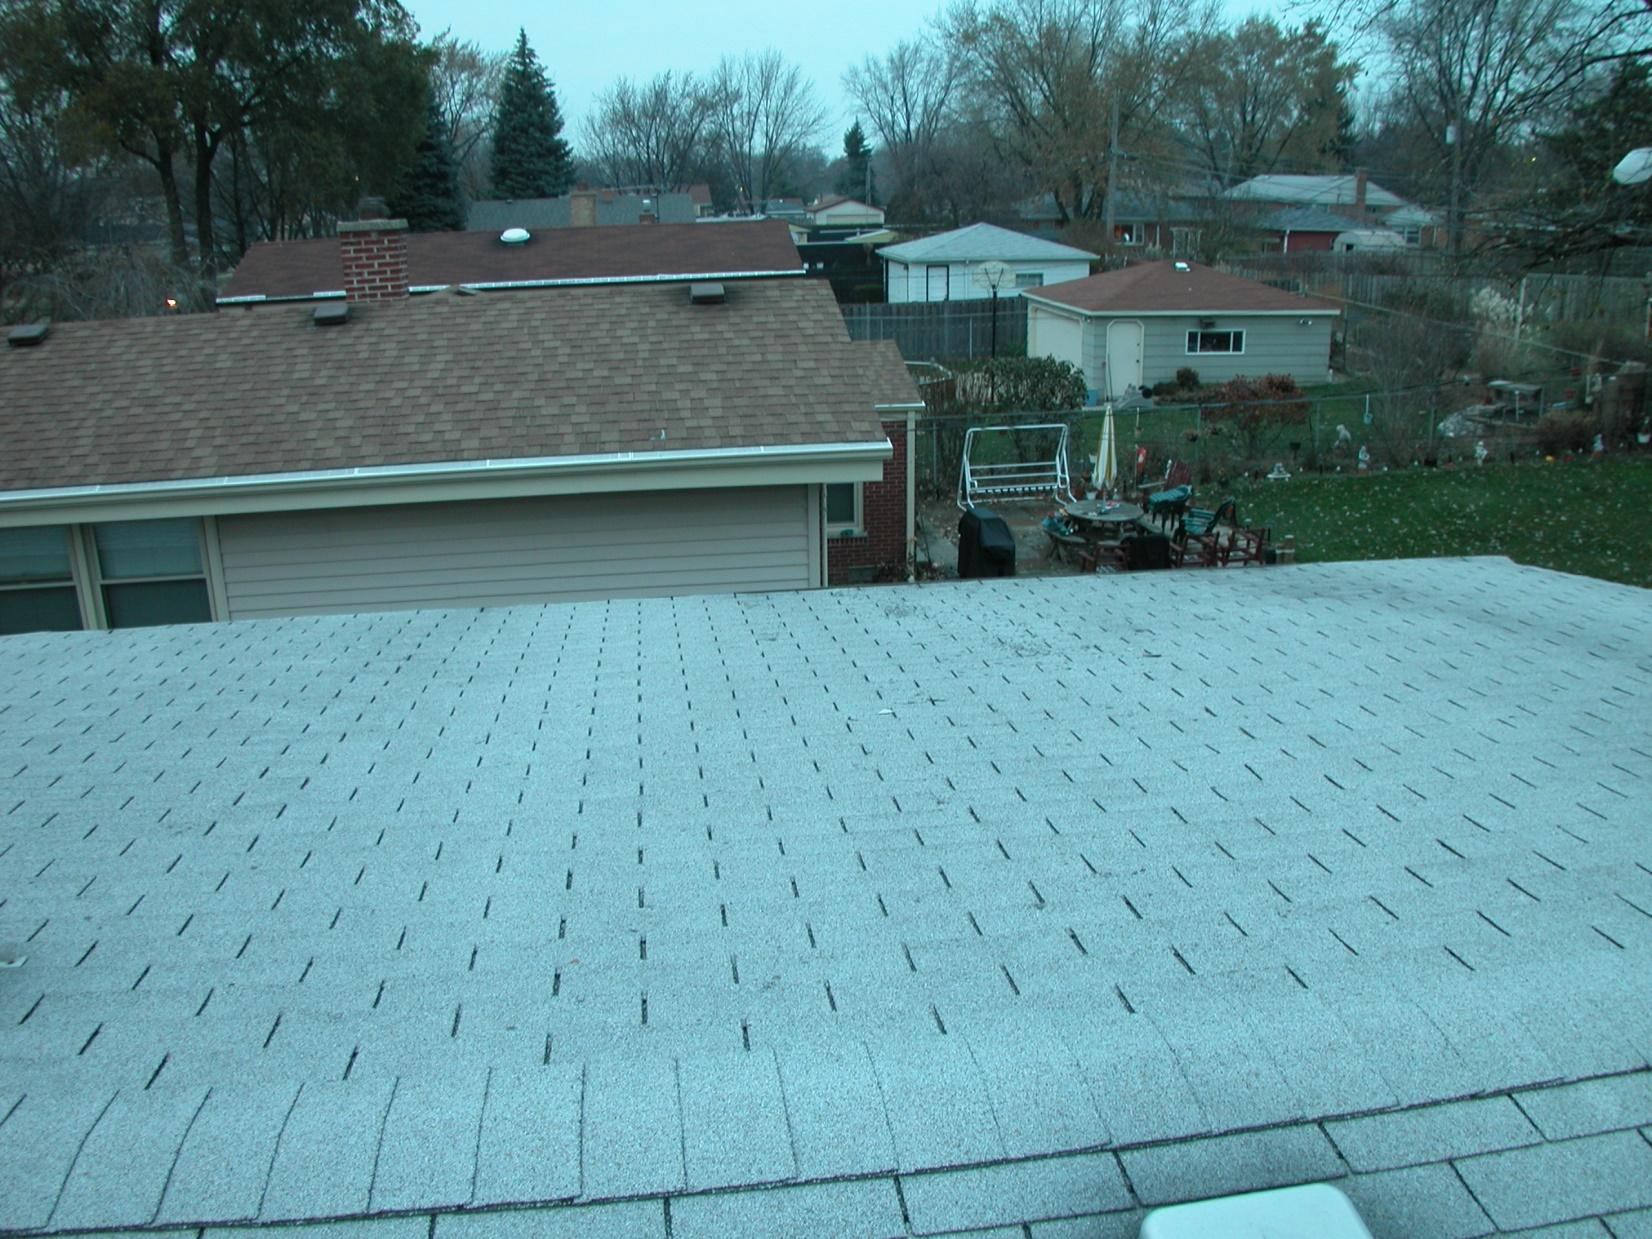 Bott Roofing Reviews 12 300 About Roof